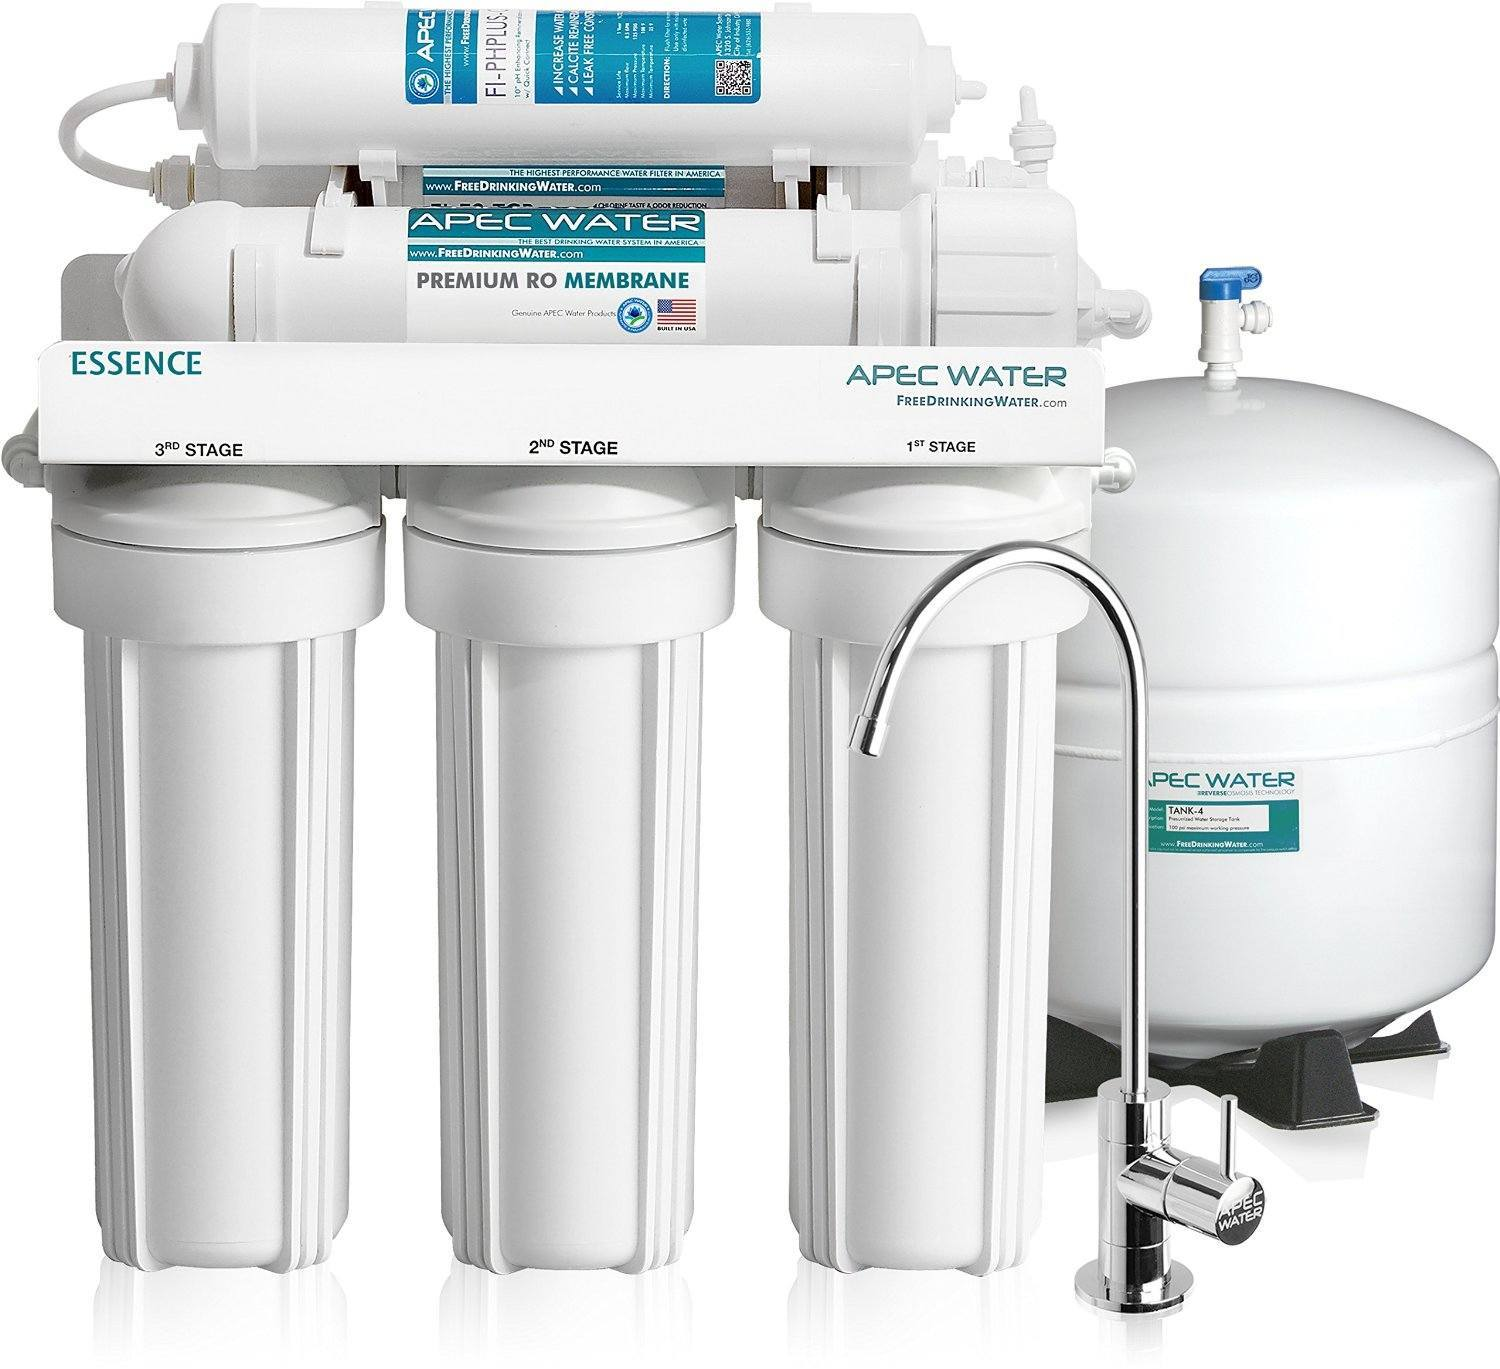 2.	APEC Water Systems ROES-PH75 Top Tier